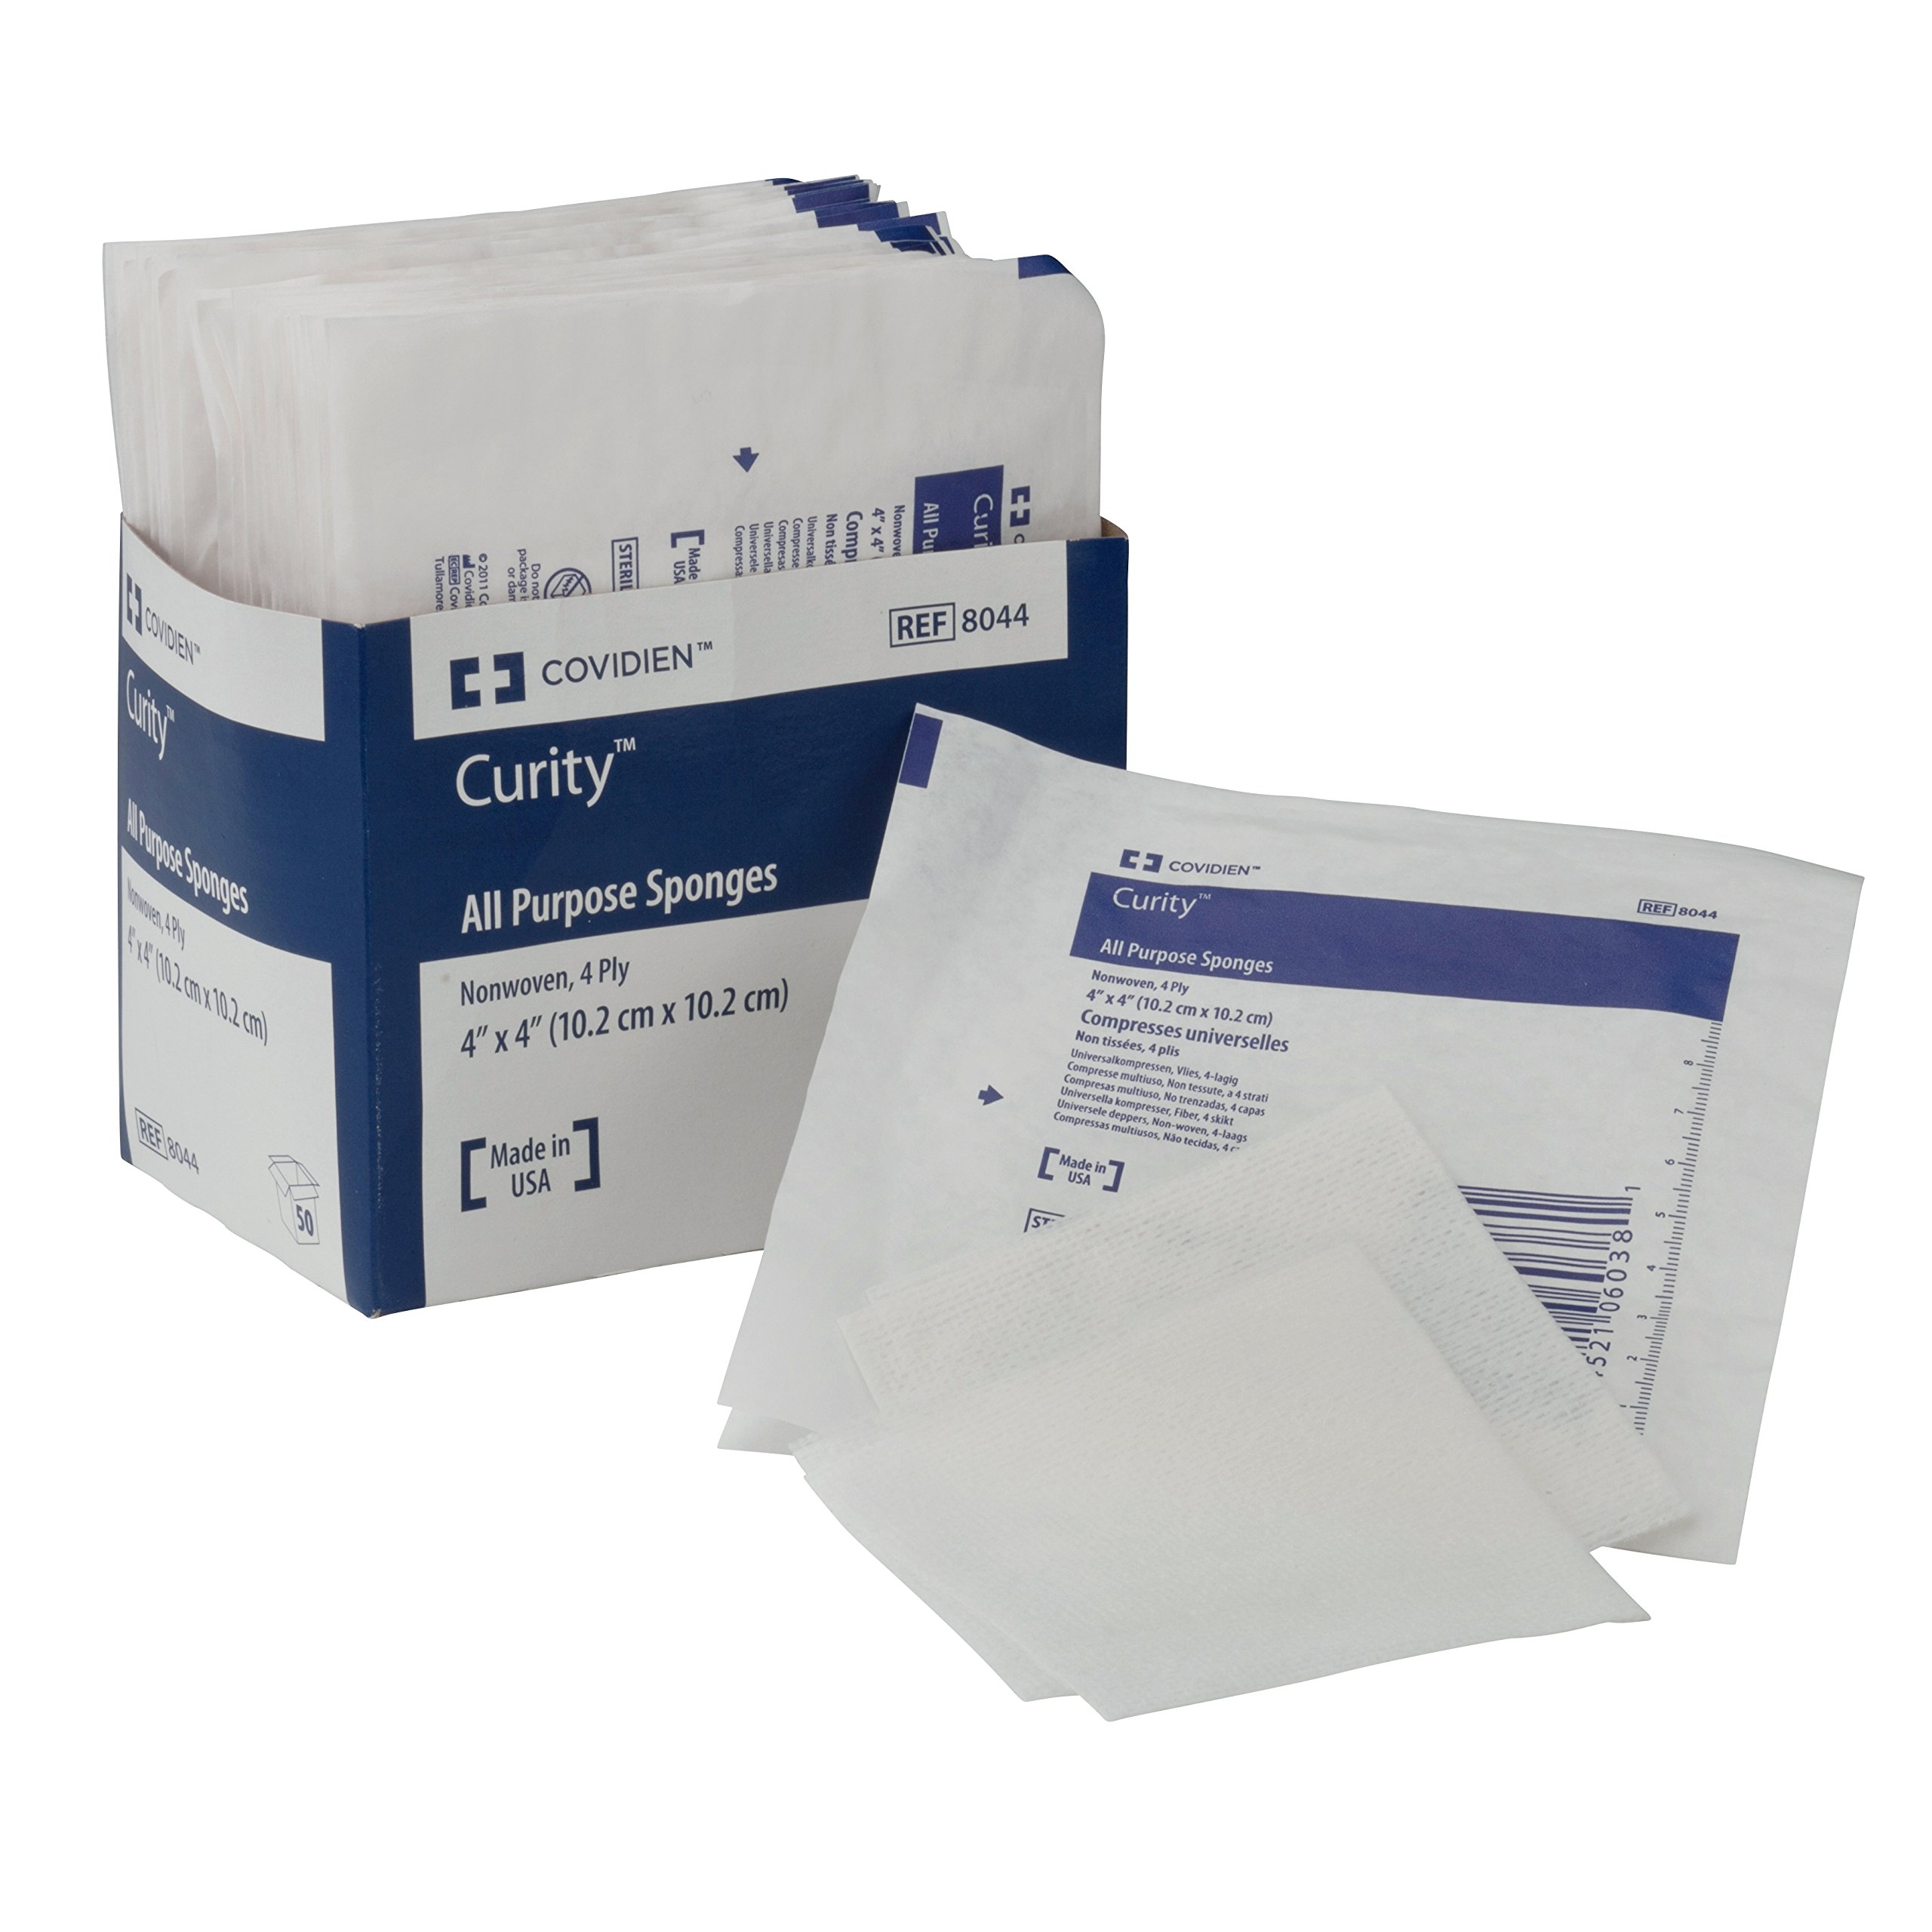 """Covidien 8044 Curity Non-Woven All-Purpose Sponge, Sterile 2's in Peel-Back Package, 4"""" x 4"""", 4-ply (Pack of 25)"""